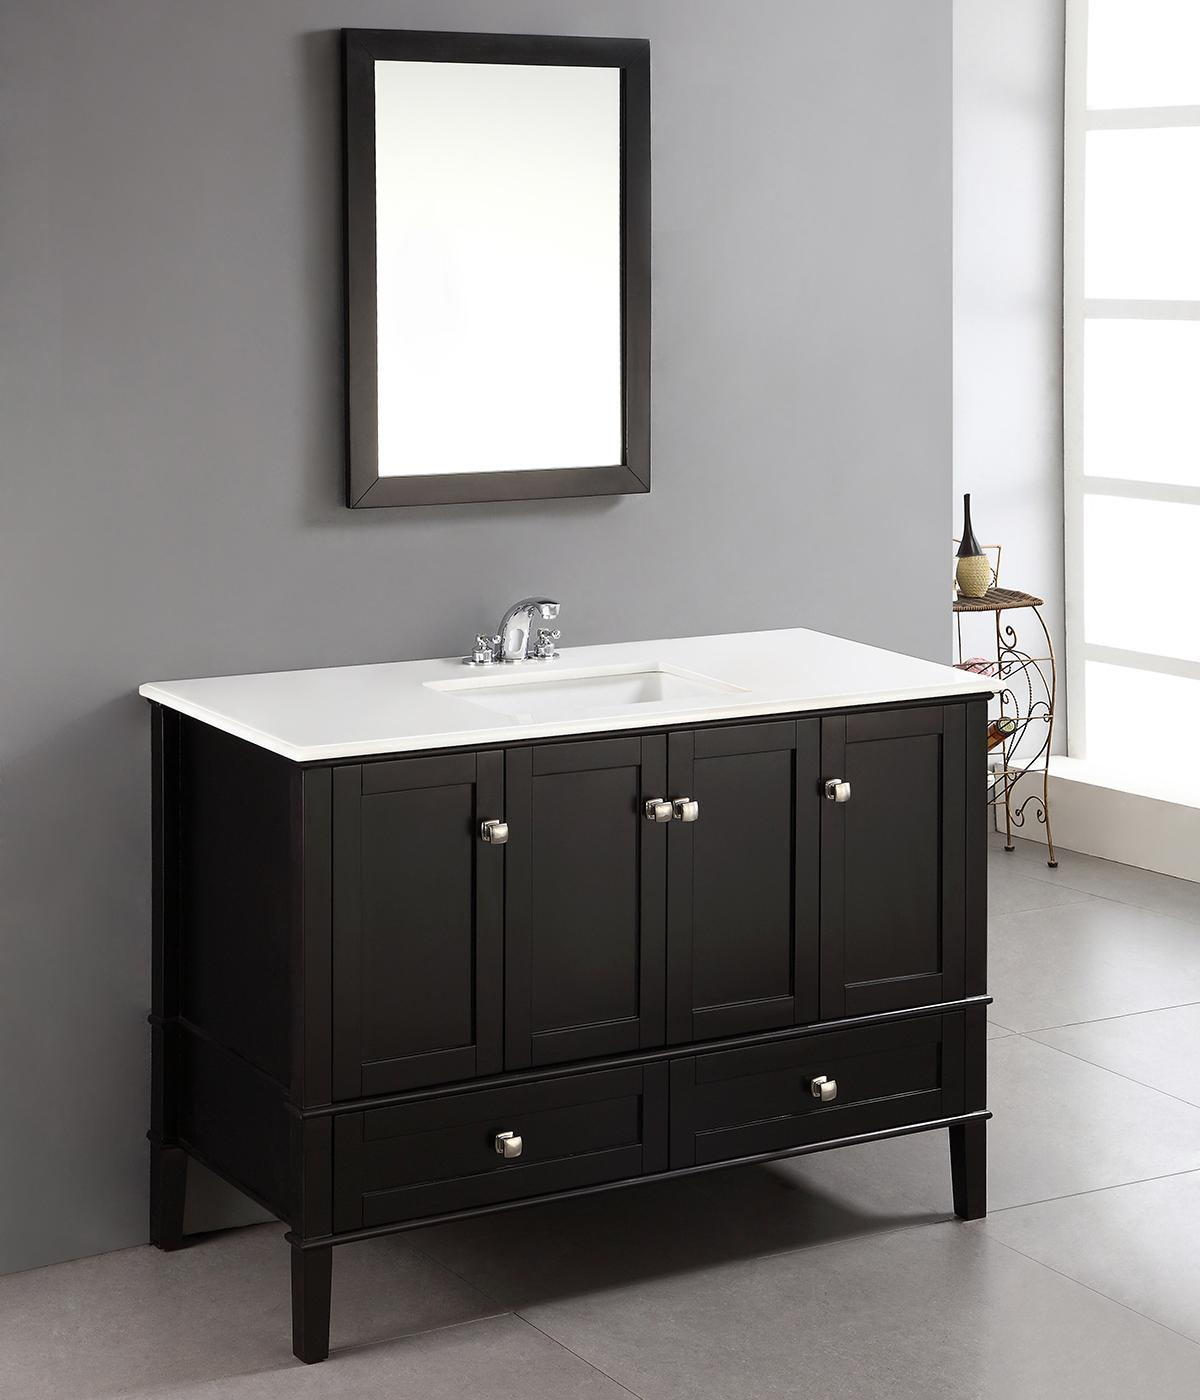 Simpli home chelsea 48 bath vanity with white quartz for Black bathroom vanity with white marble top